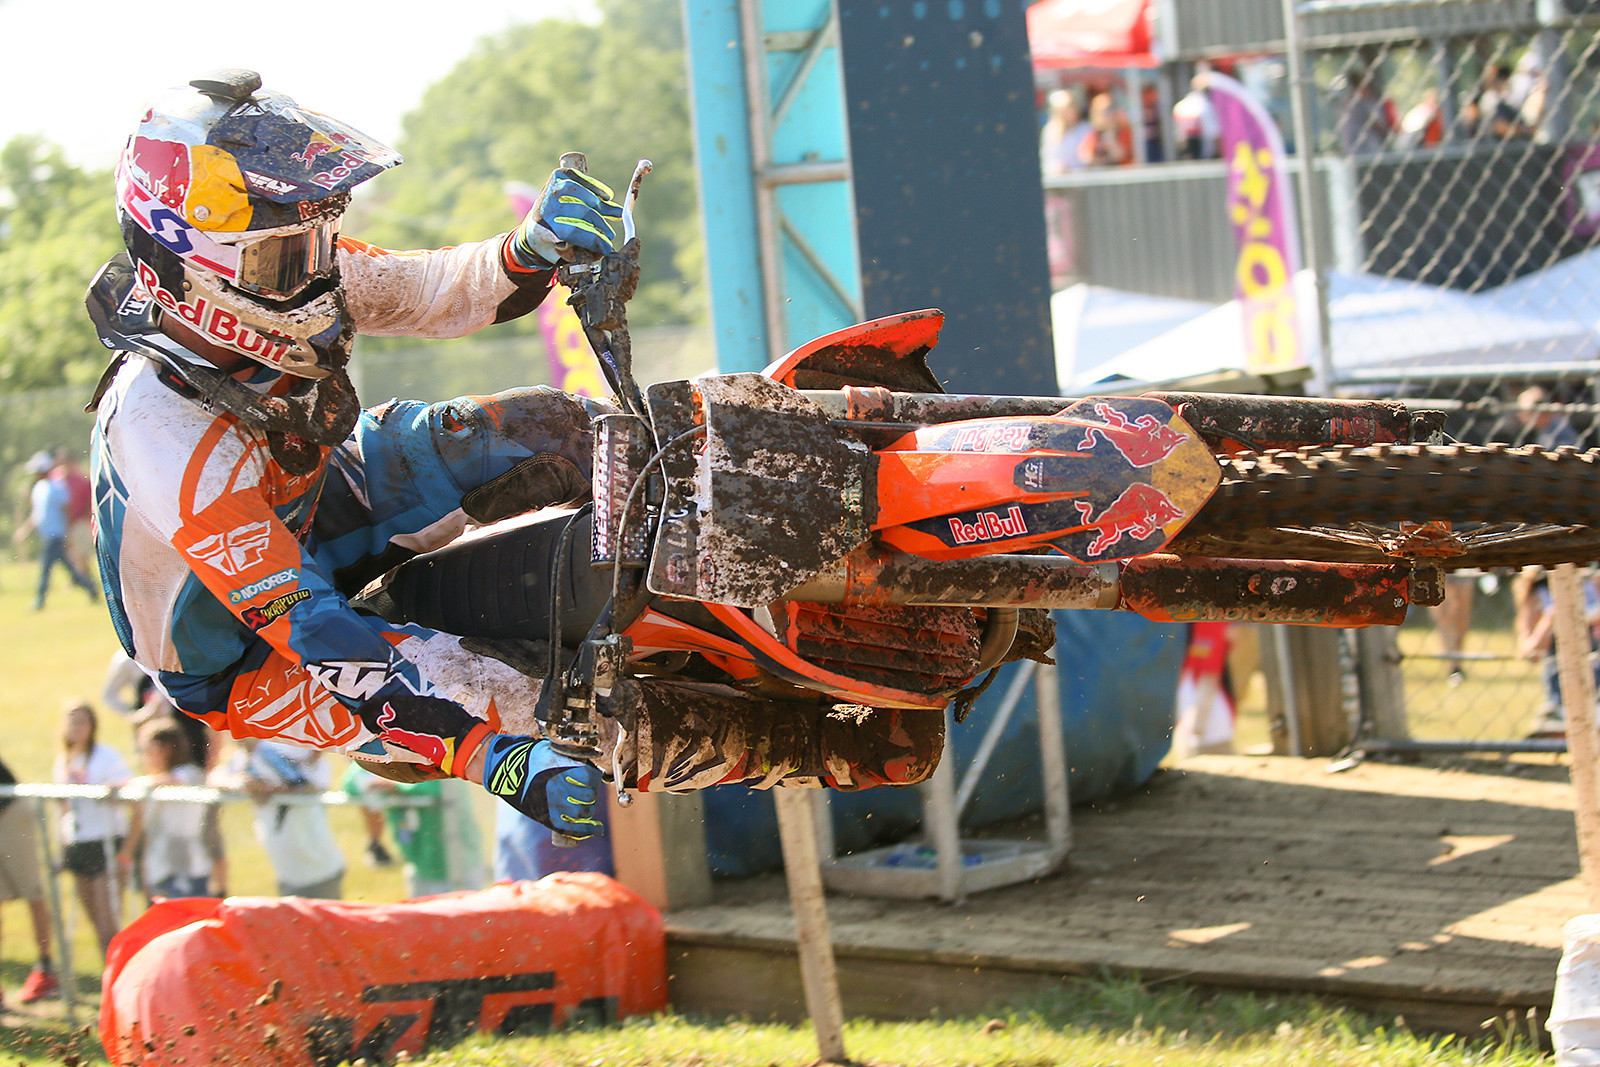 ...and last, but not least, Trey Canard.